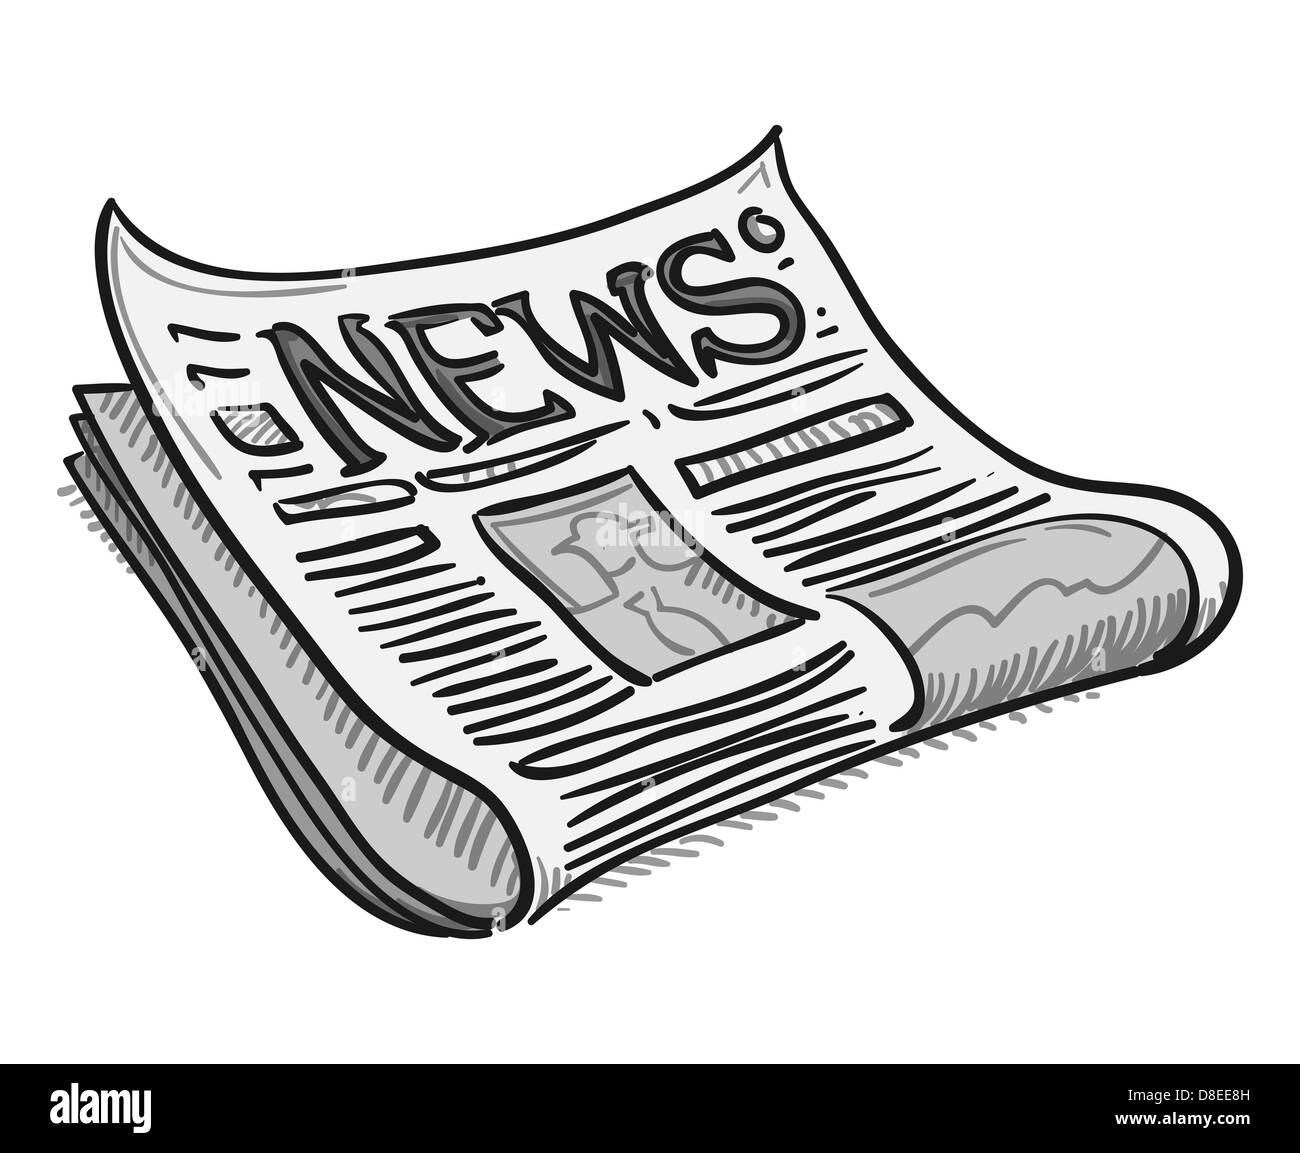 Newspaper Cover Page Stock Photos & Newspaper Cover Page Stock ...